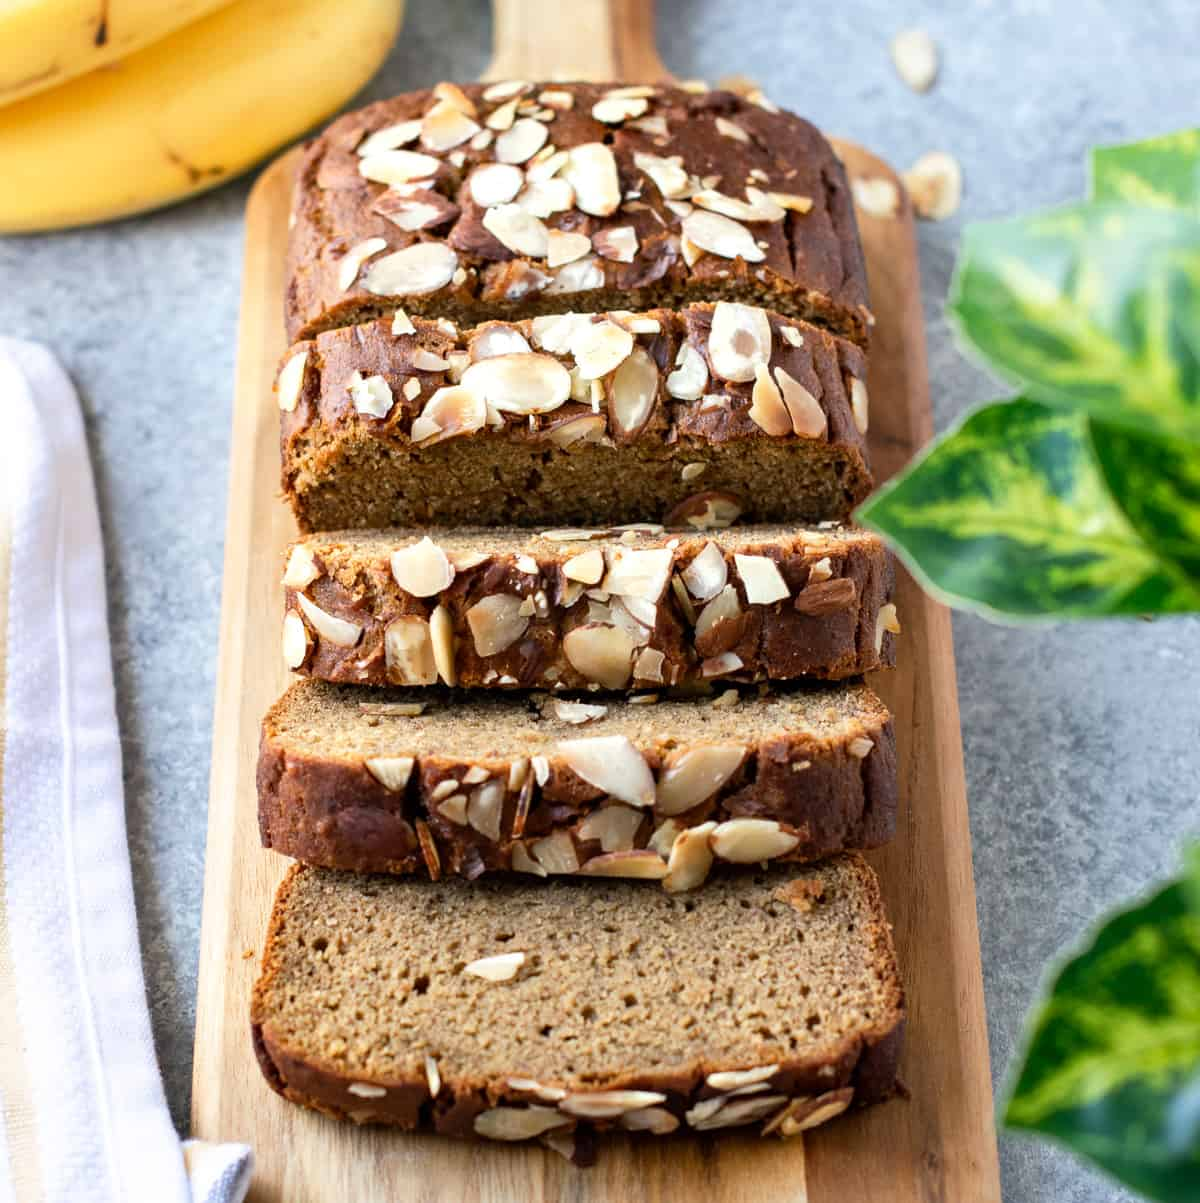 Banana bread with almonds on the top of the bread.